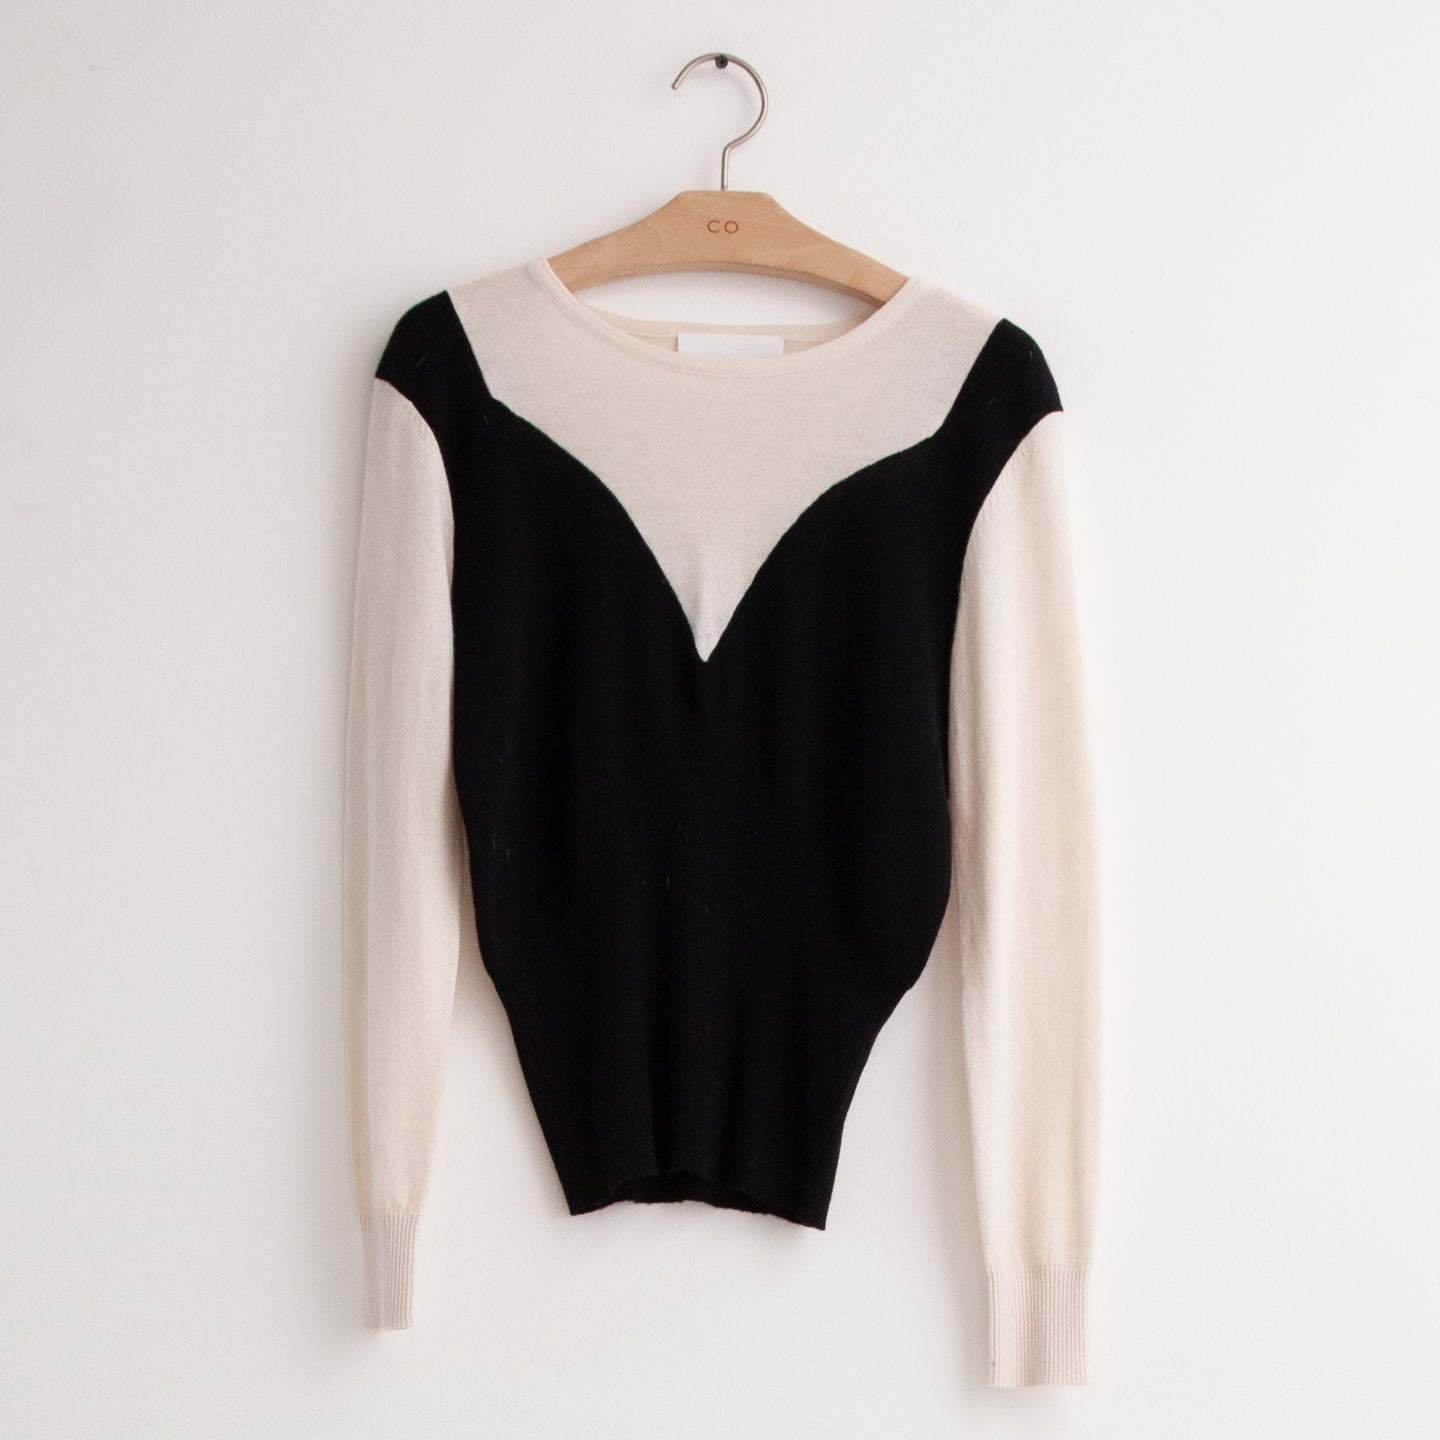 CO - Bi color sweater with ribbed banded hem in black and ivory cashmere